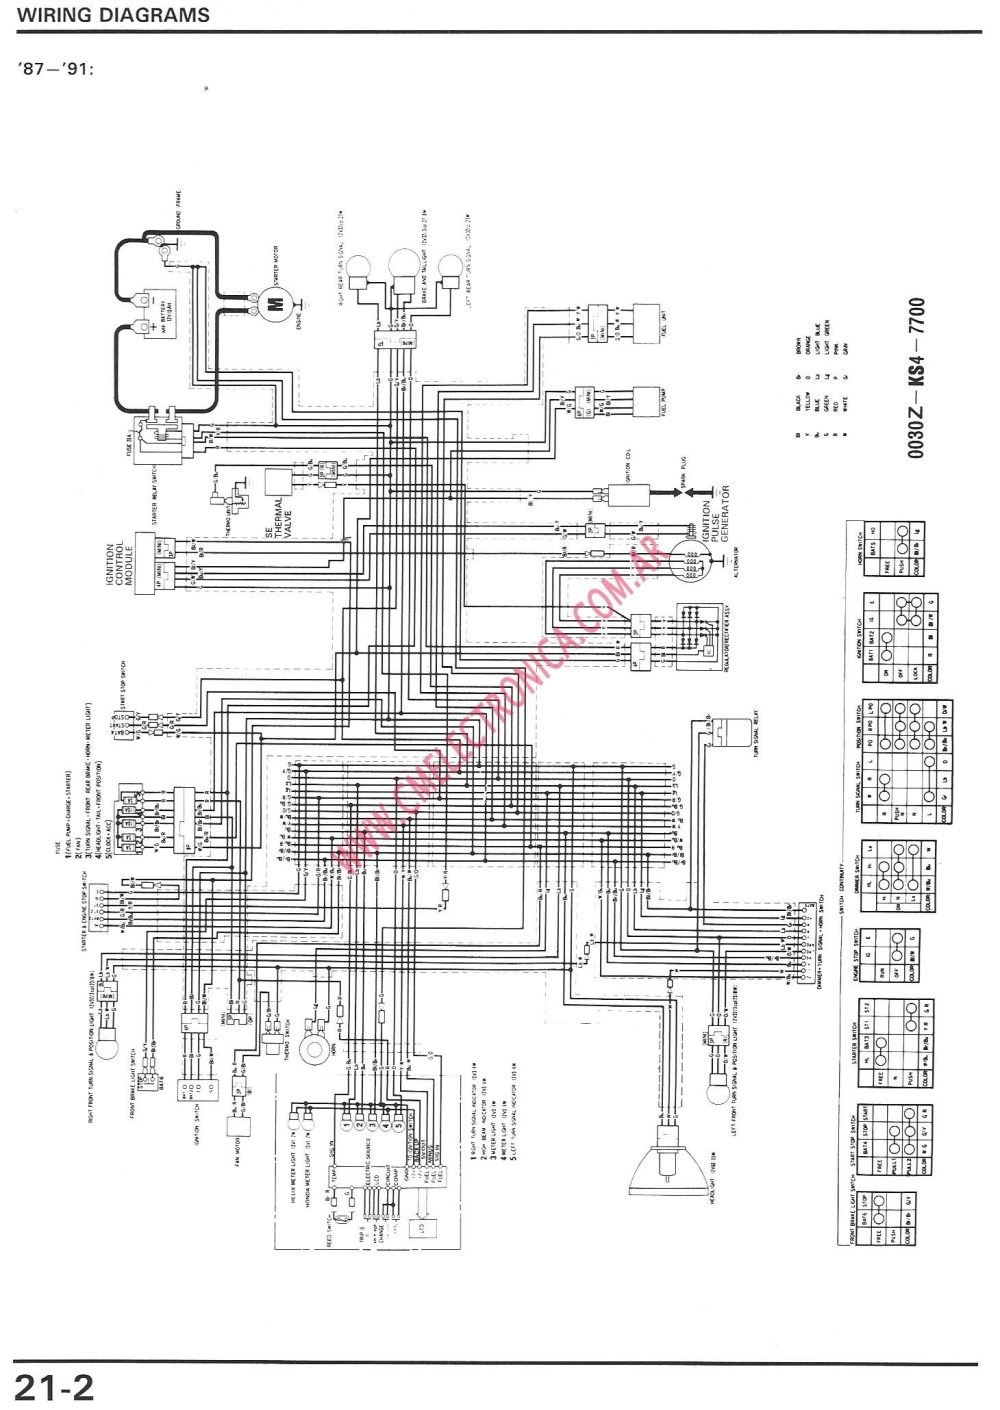 medium resolution of daihatsu hijet engine diagram daihatsu hijet wiring diagram daihatsu wiring diagrams instructions of daihatsu hijet engine